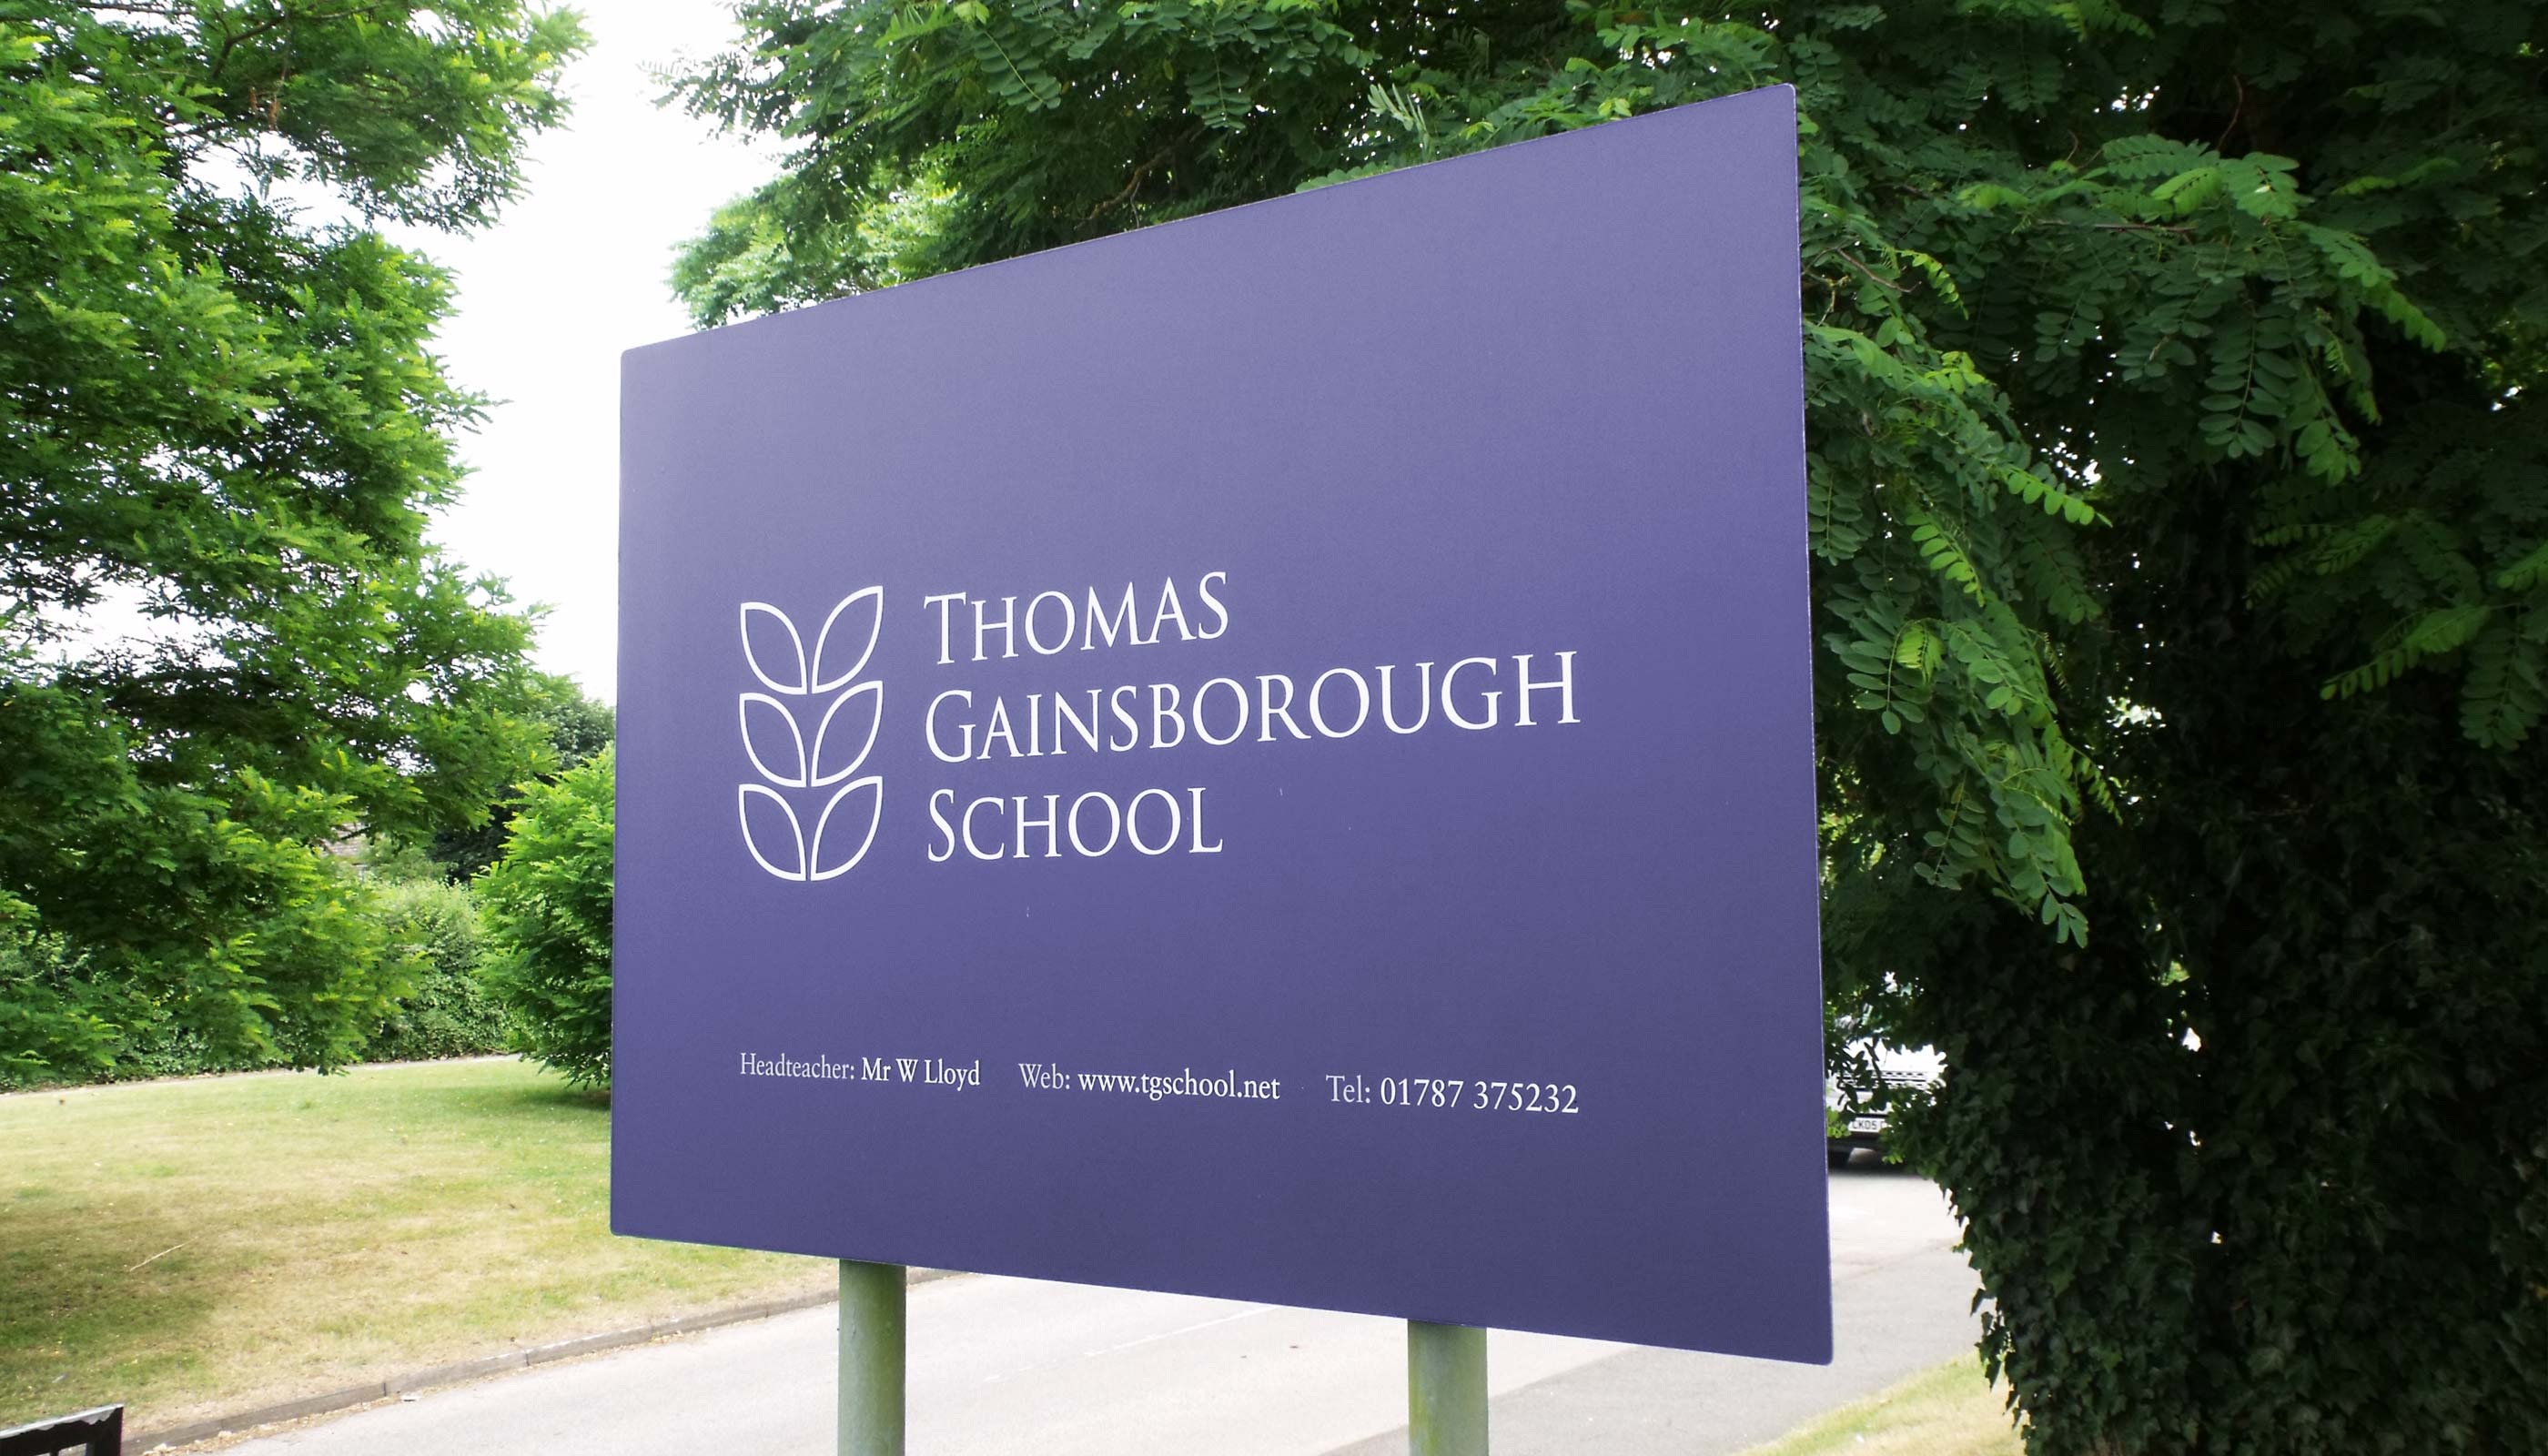 Signage design for Thomas Gainsborough School in Sudbury, Suffolk.